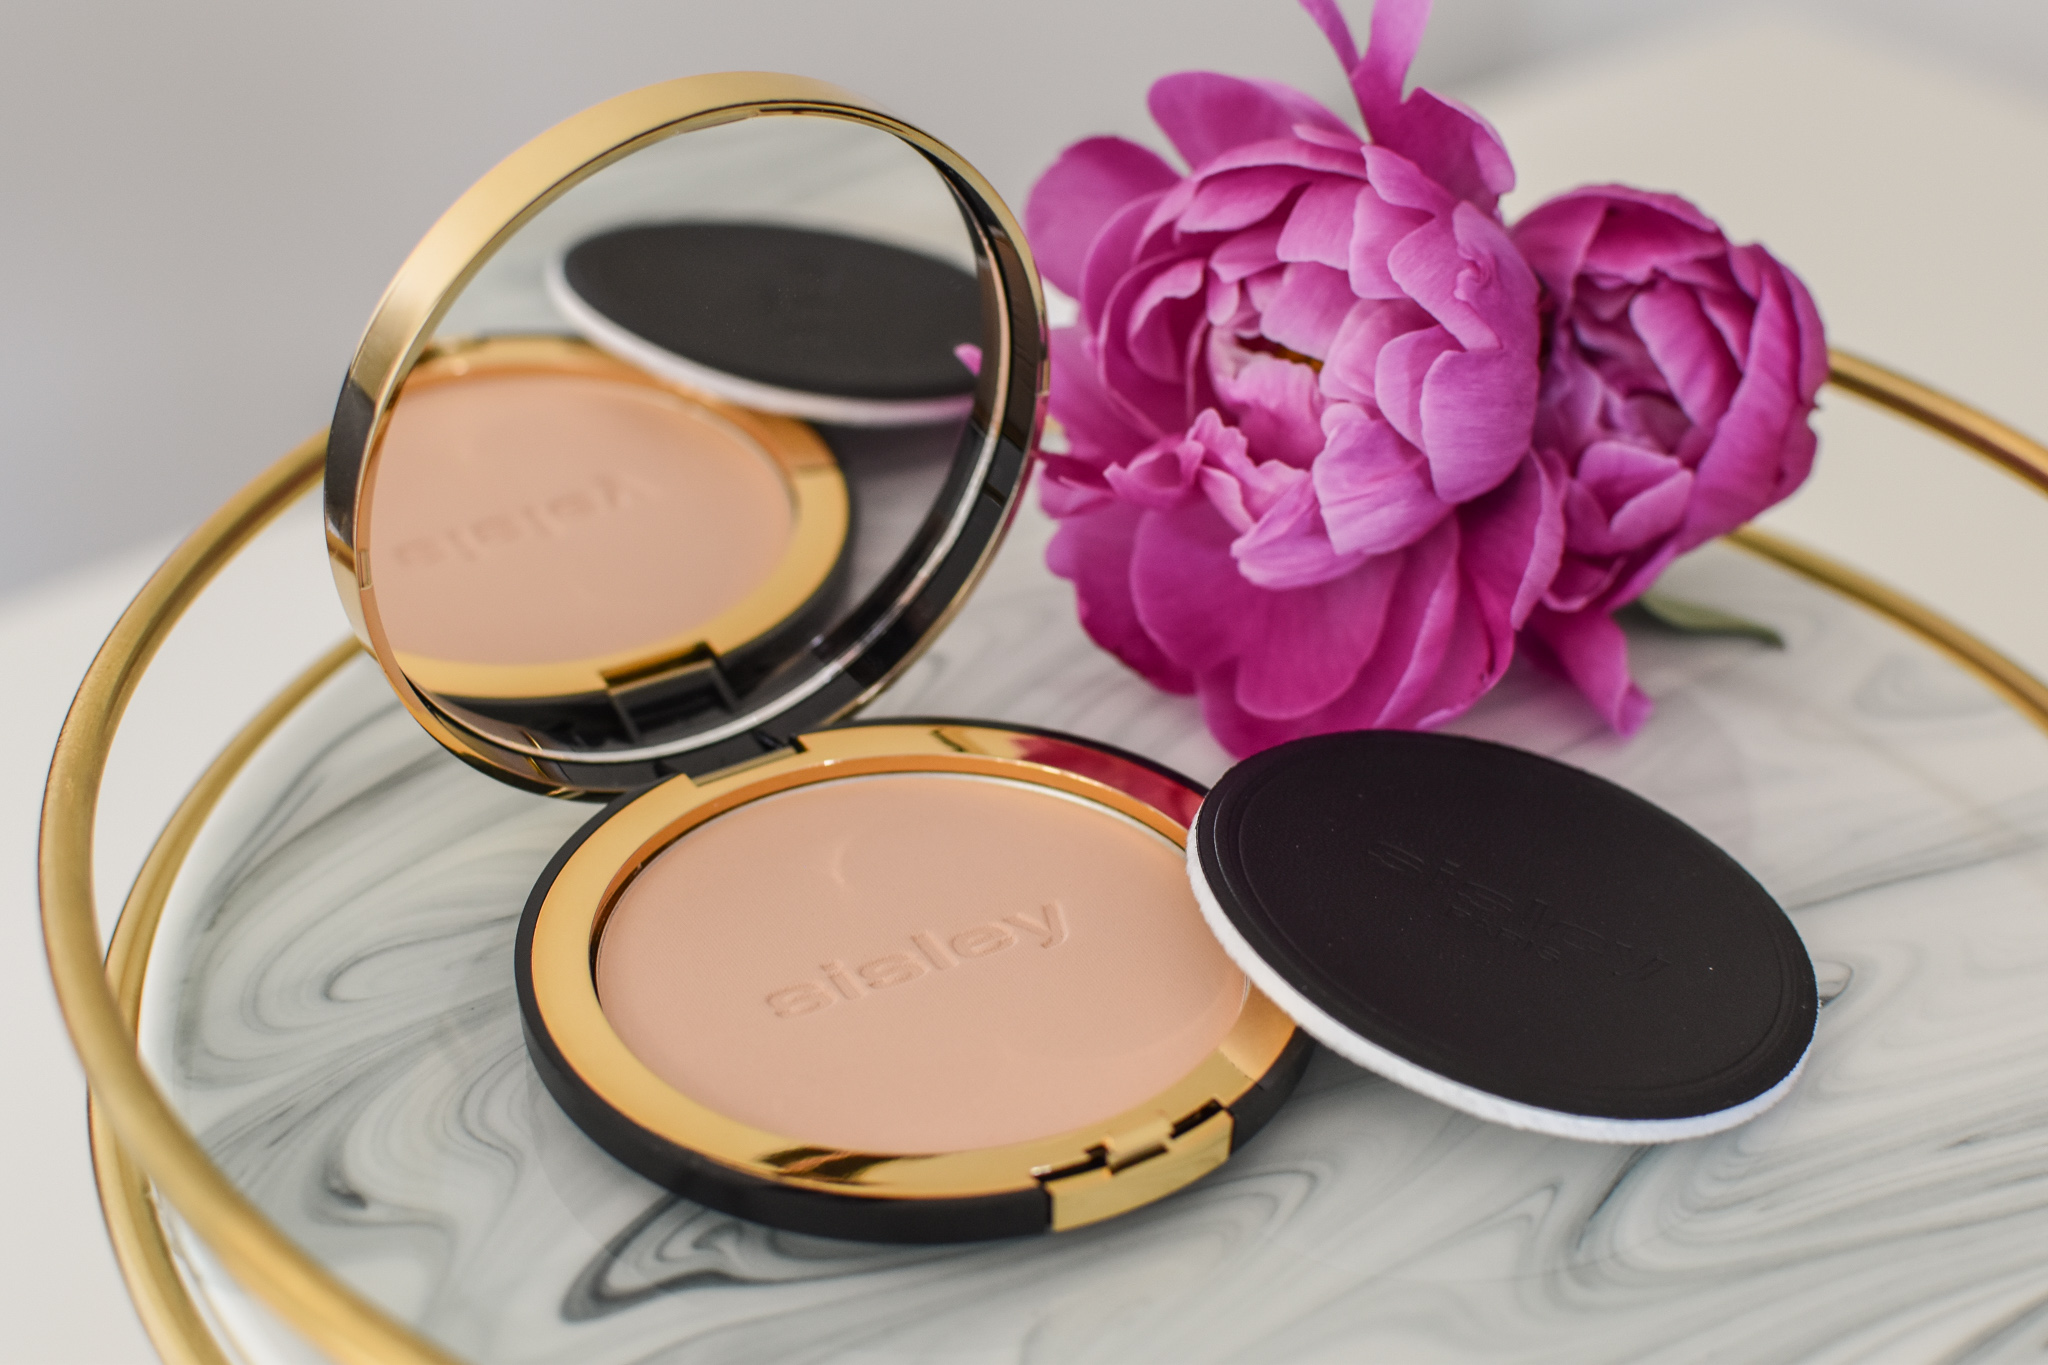 Sisley - Phyto Pressed Powder Matifying and Beautifying